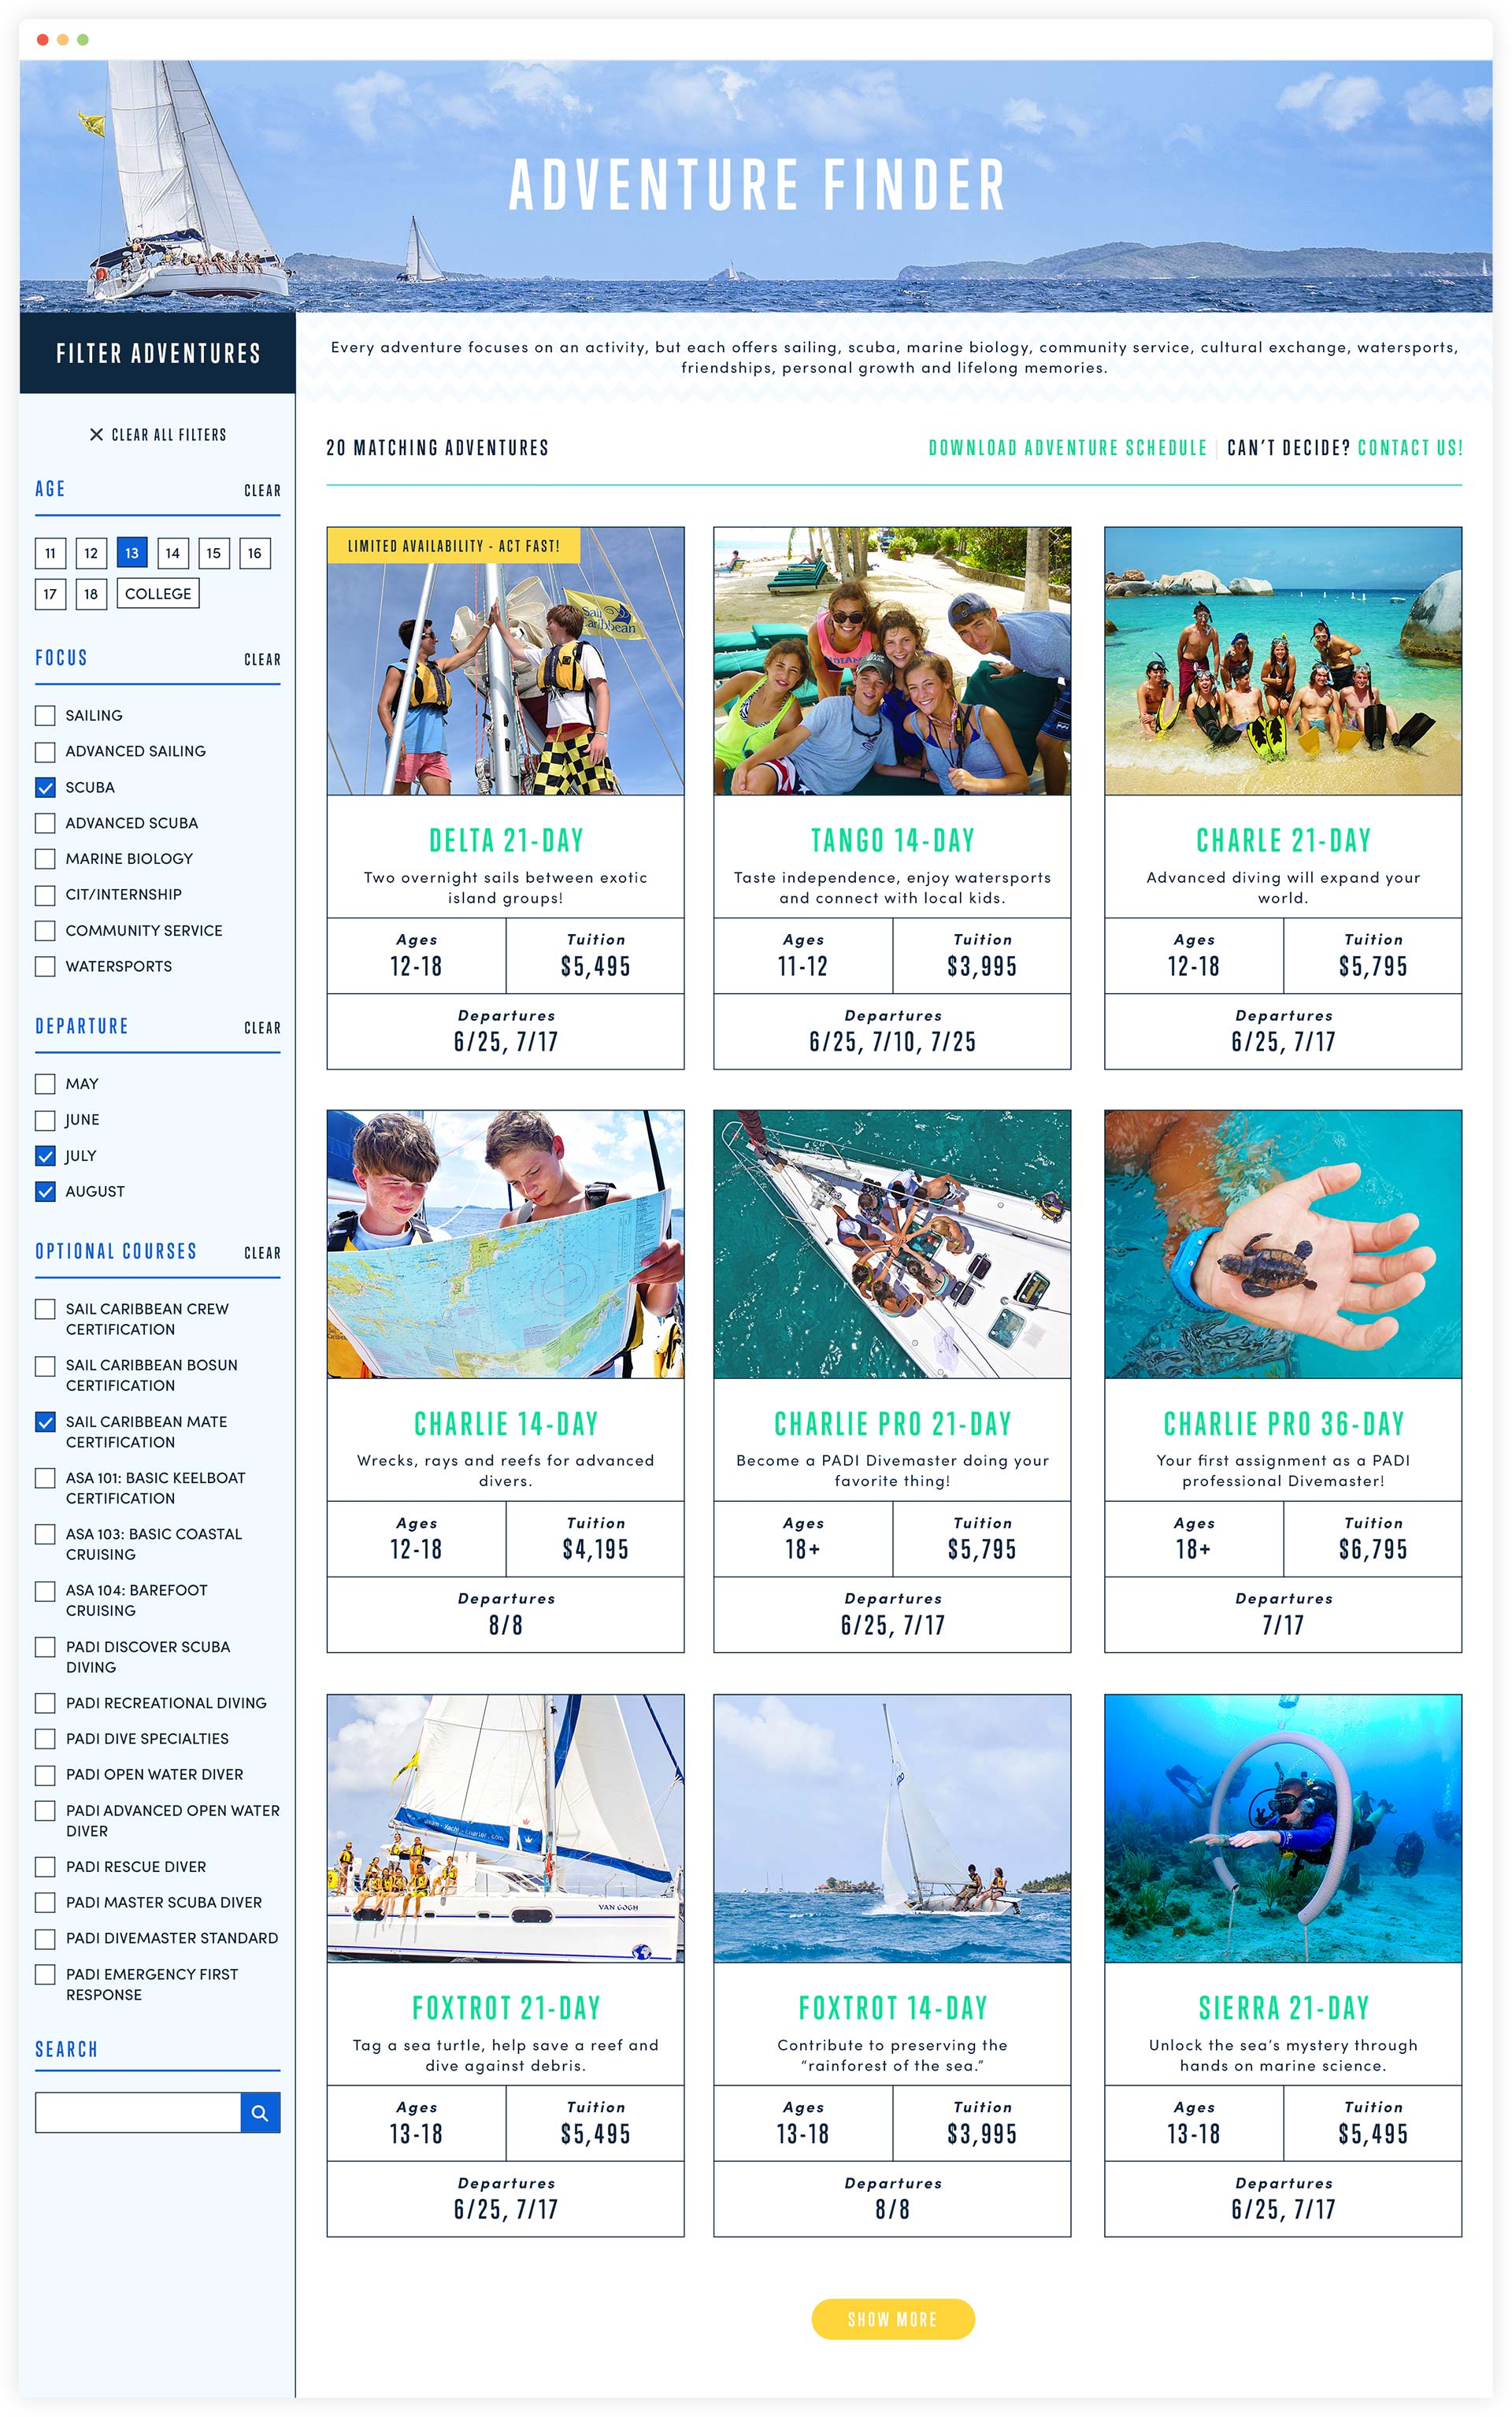 sail-caribbean-adventure-finder-stacked